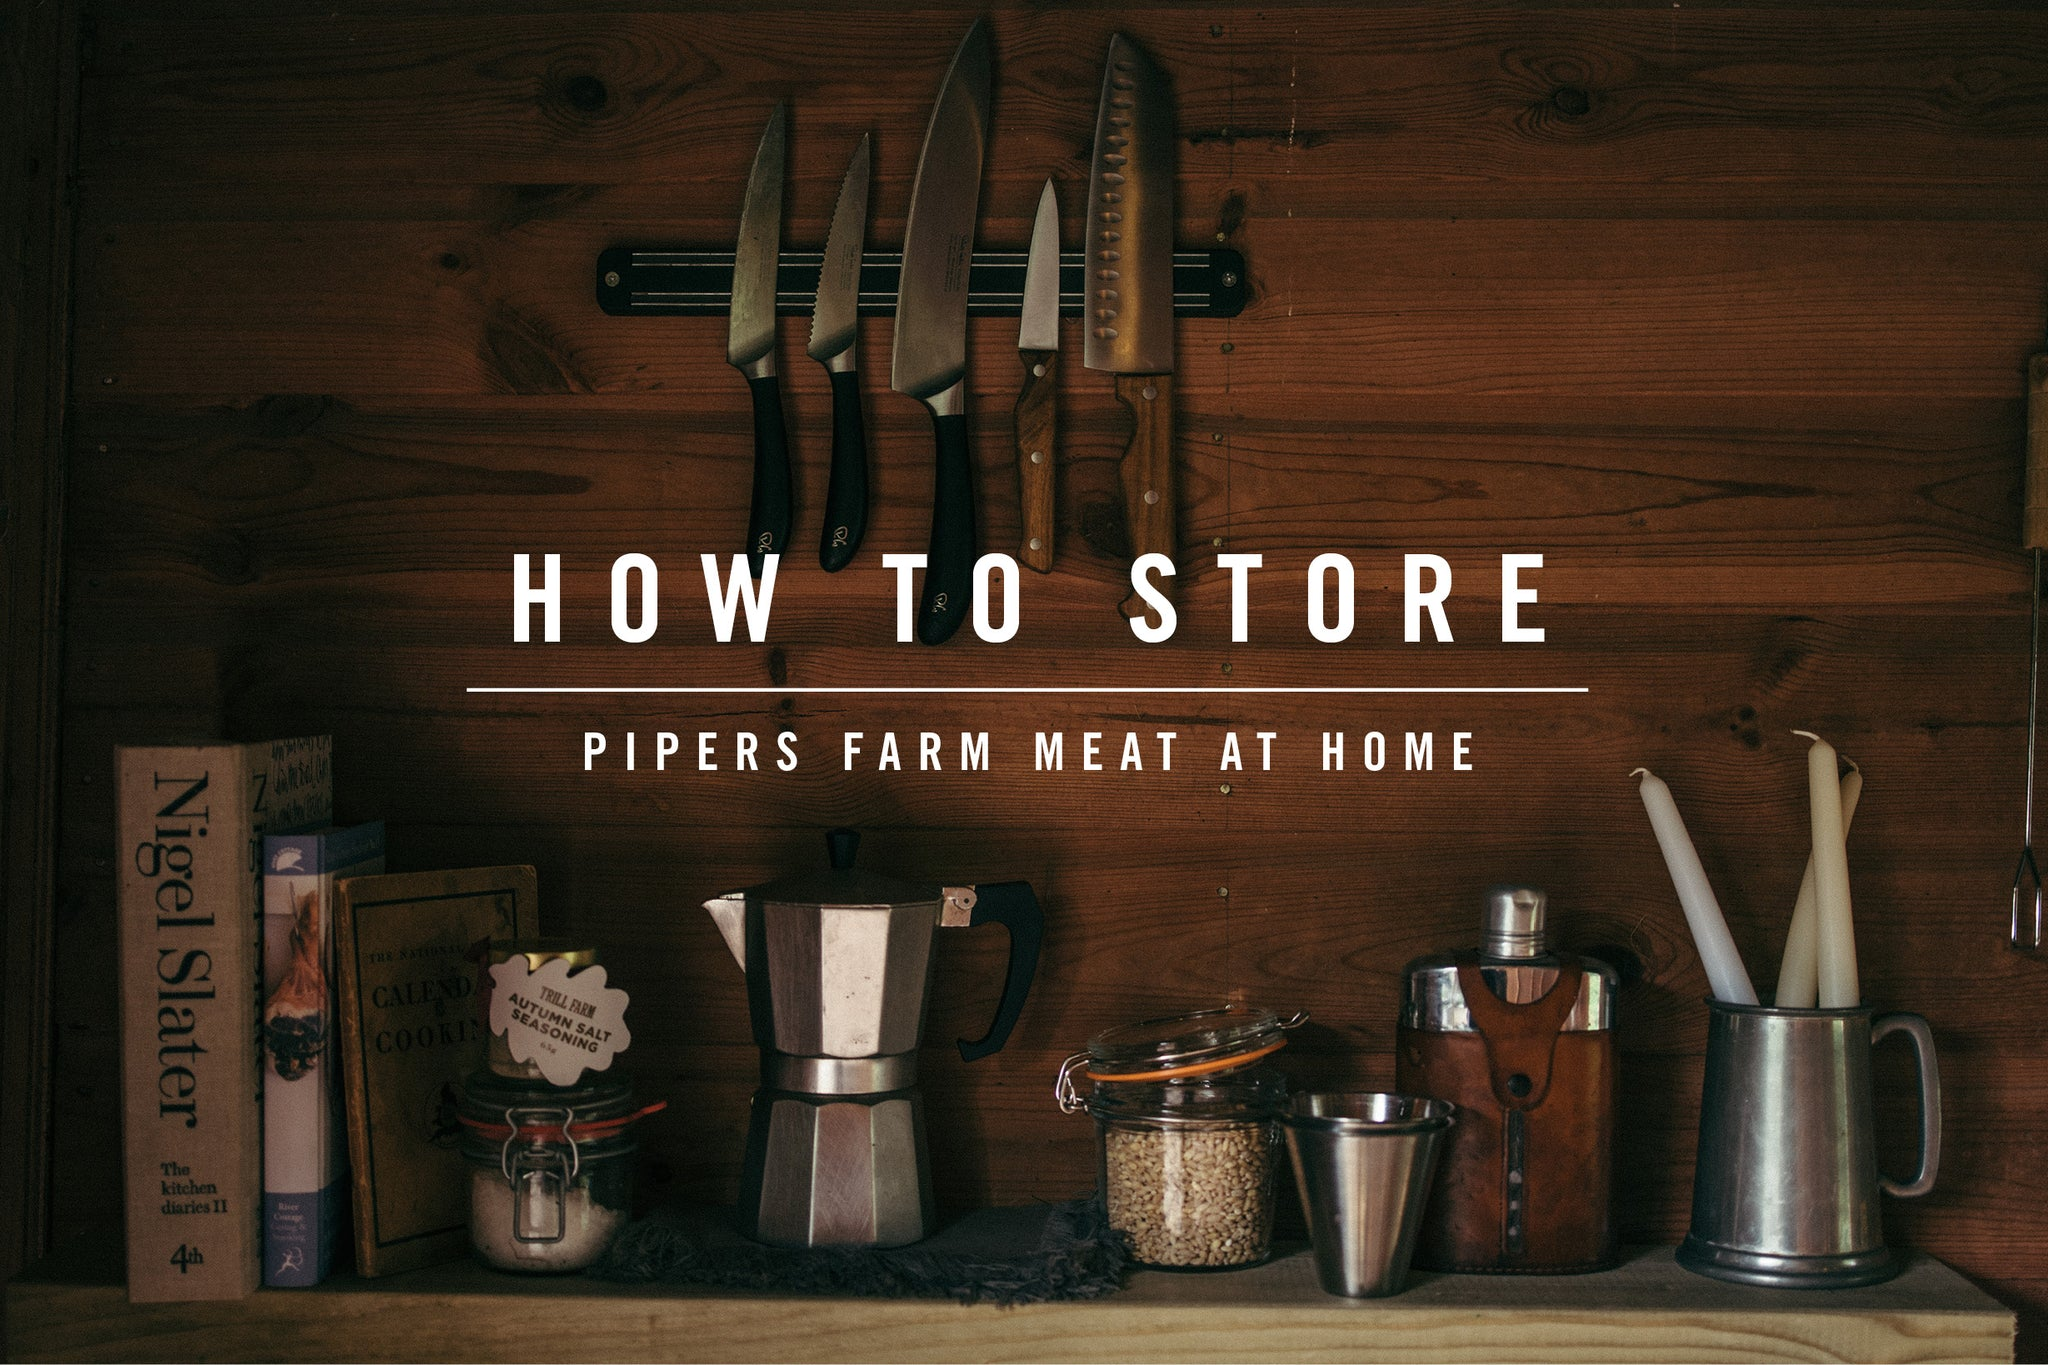 How to store Pipers Farm meat at home